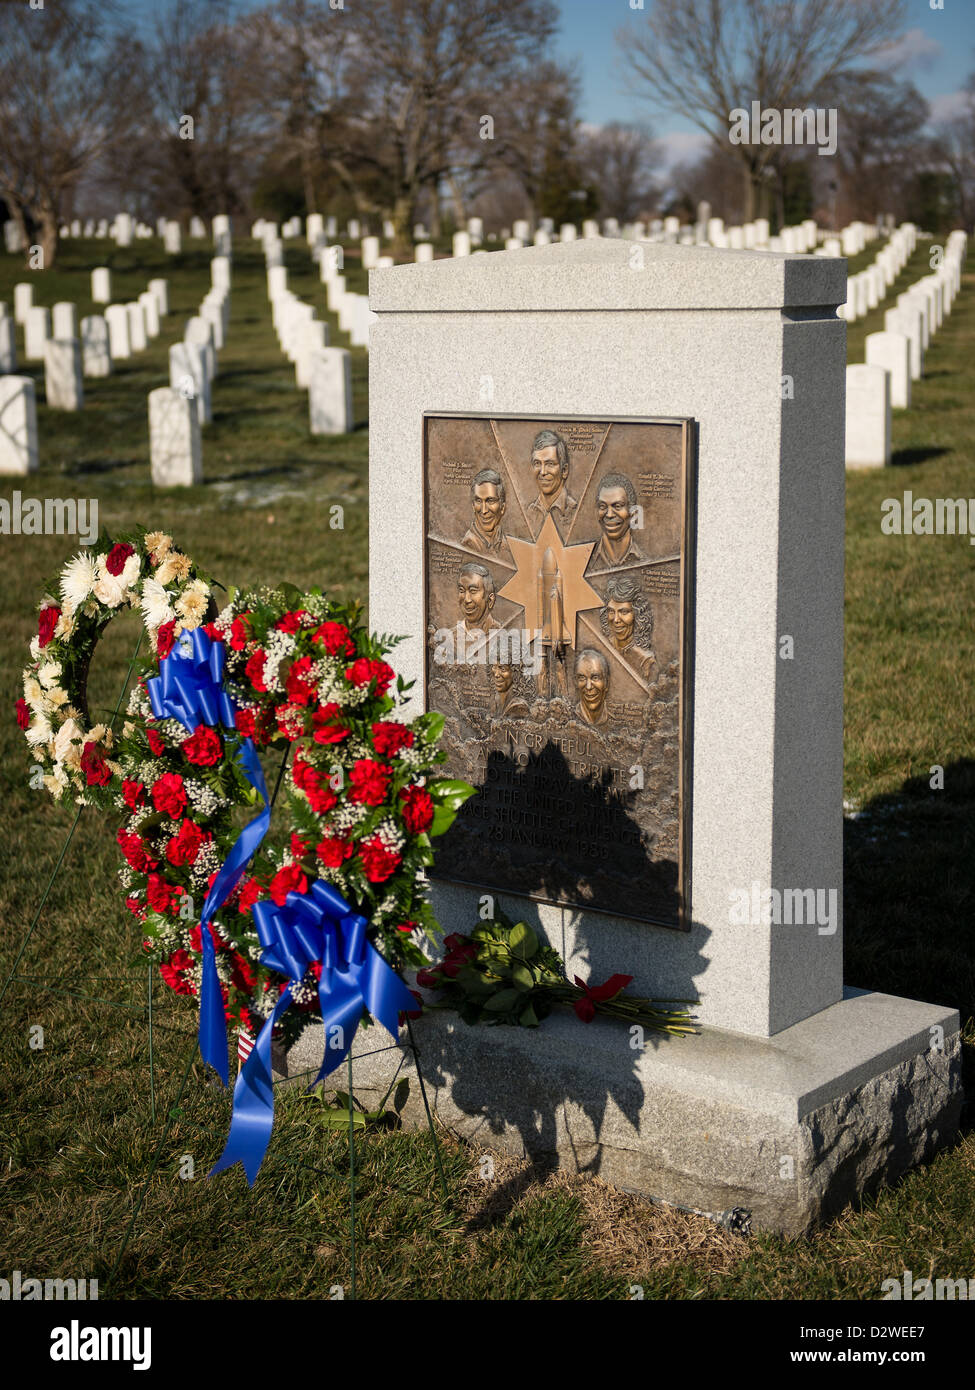 The Space Shuttle Challenger Memorial with a memorial wreath as part of NASA's Day of Remembrance February 1, - Stock Image